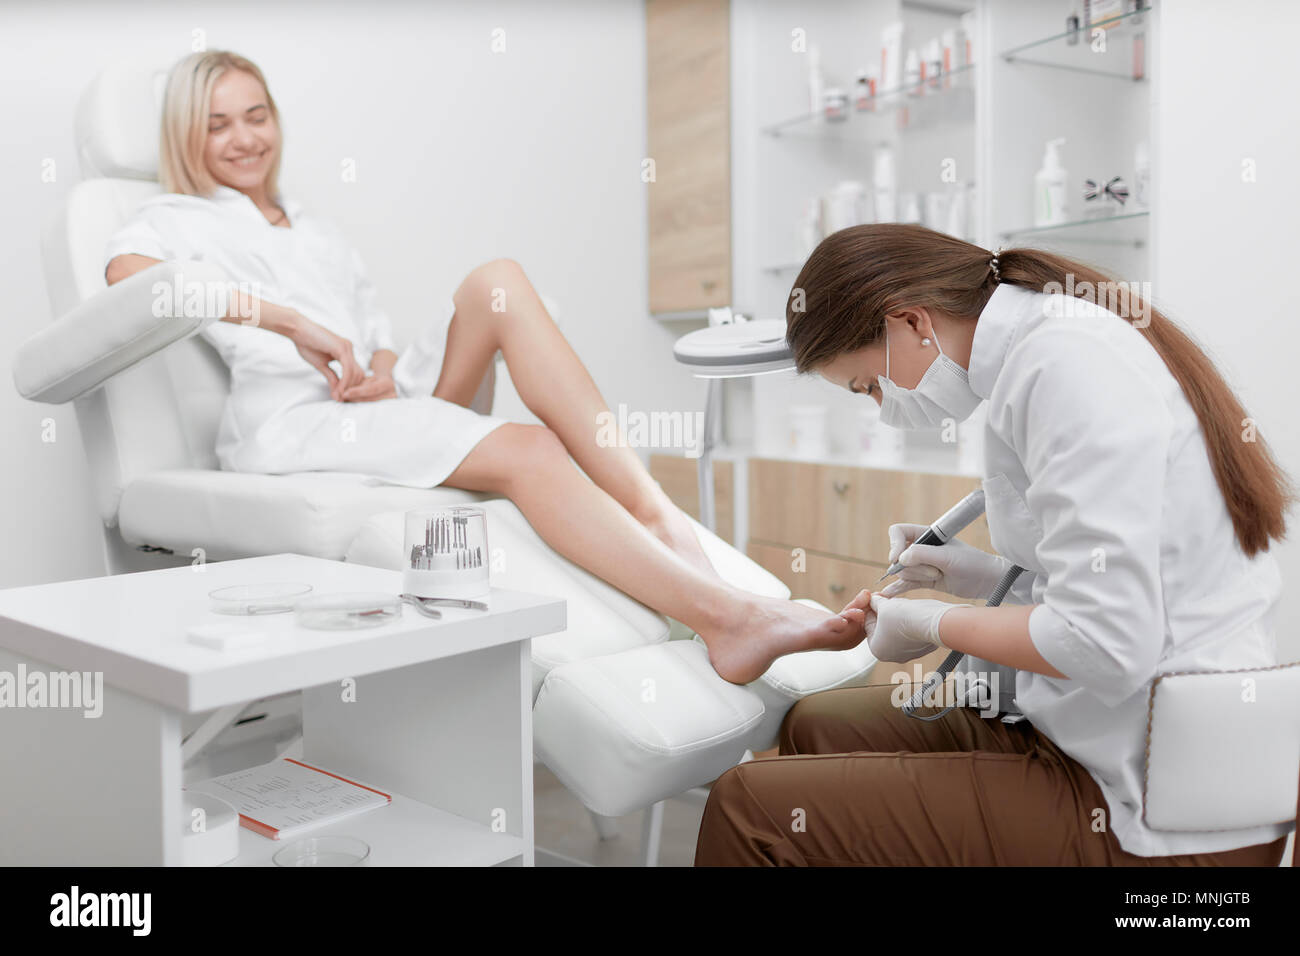 Podiatrist making procedure for smiling clients foot. - Stock Image